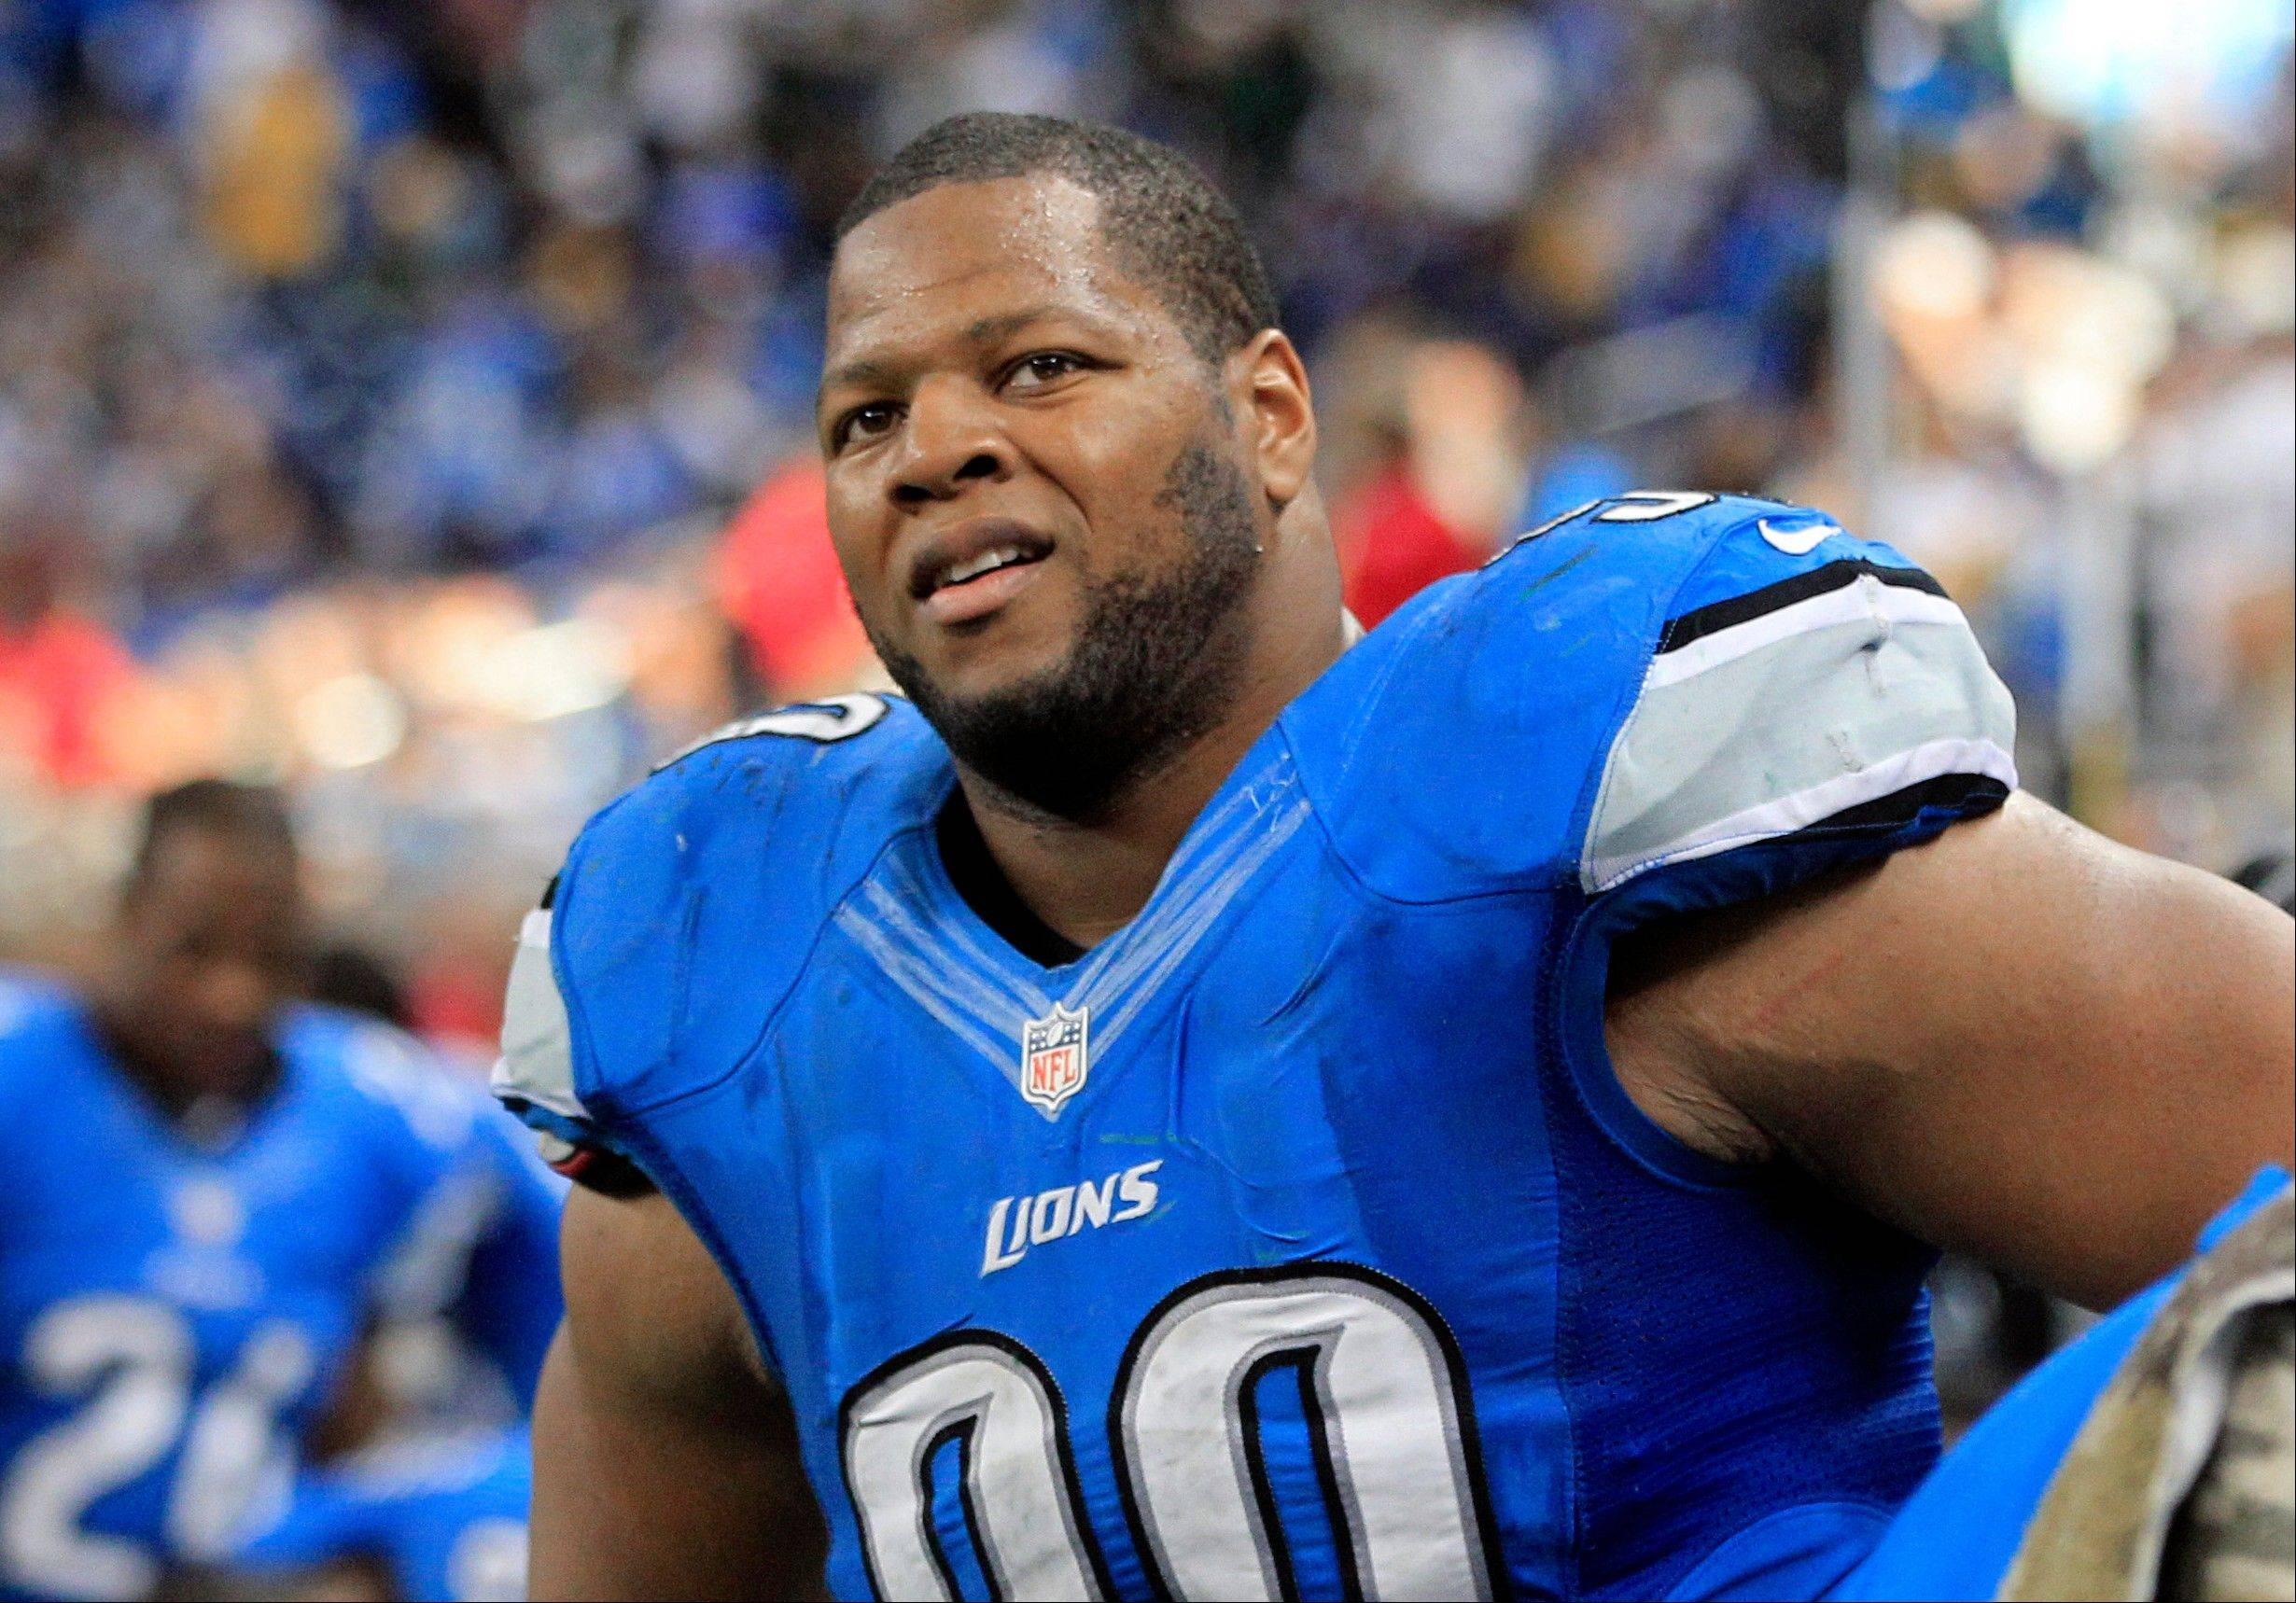 Detroit Lions defensive tackle Ndamukong Suh